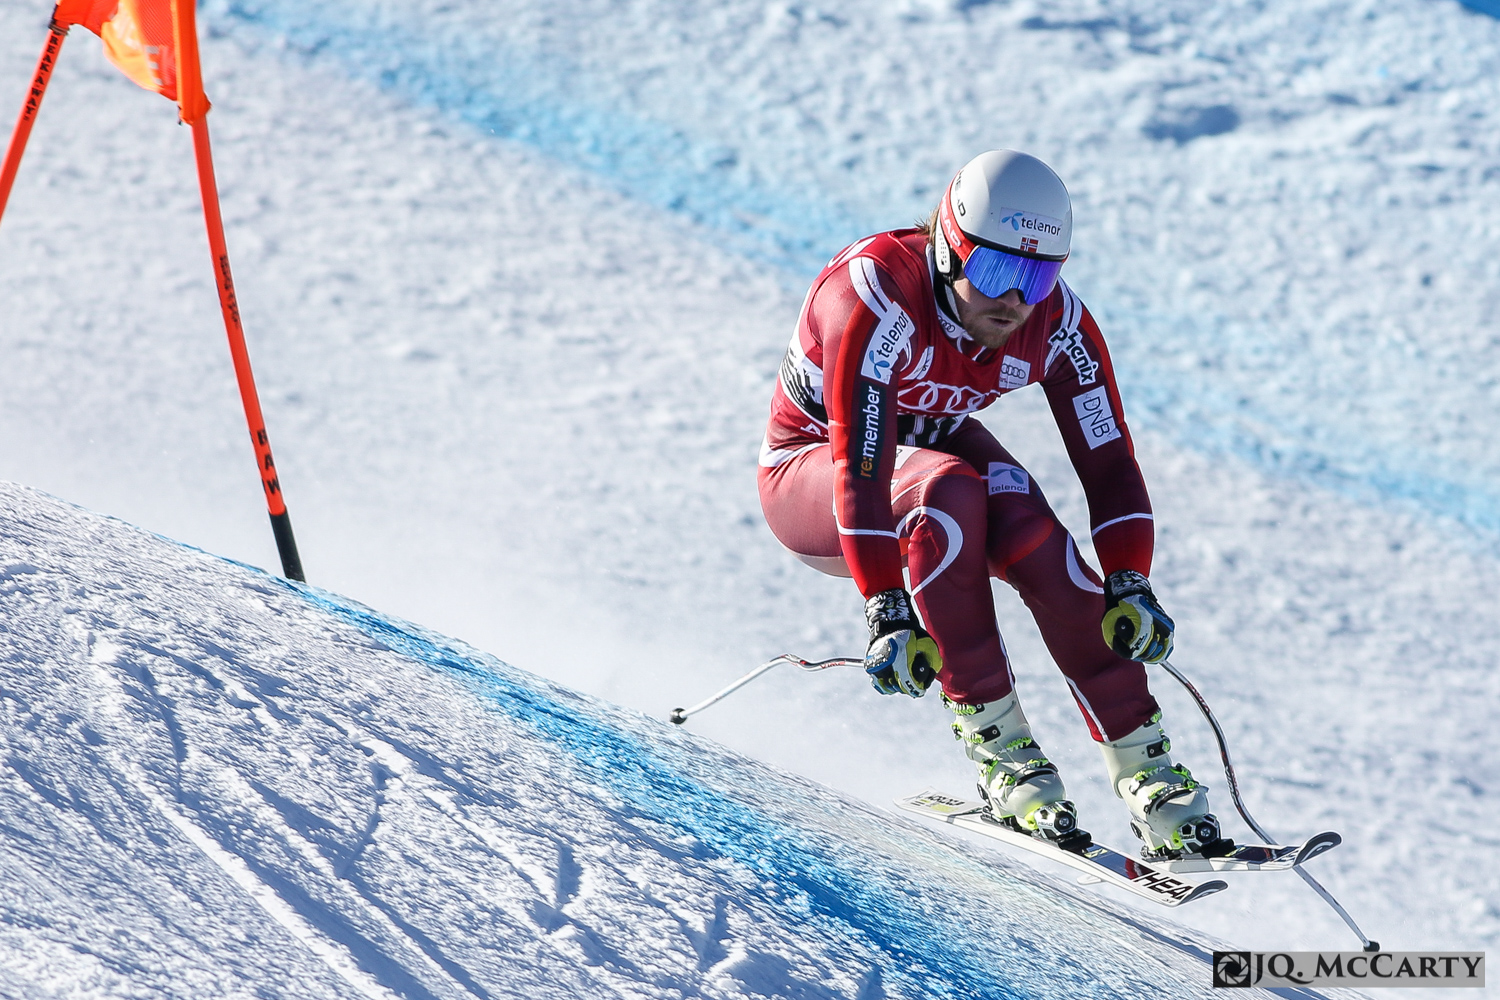 Norway's Kjetil Jansrud brings his skis back to the ground after banking a hard turn during the second day of training of the Birds of Prey World Cup downhill race Thursday in Beaver Creek. Jansrud was the fastest two days in a row with a time of 1 minute, 42.87 seconds.